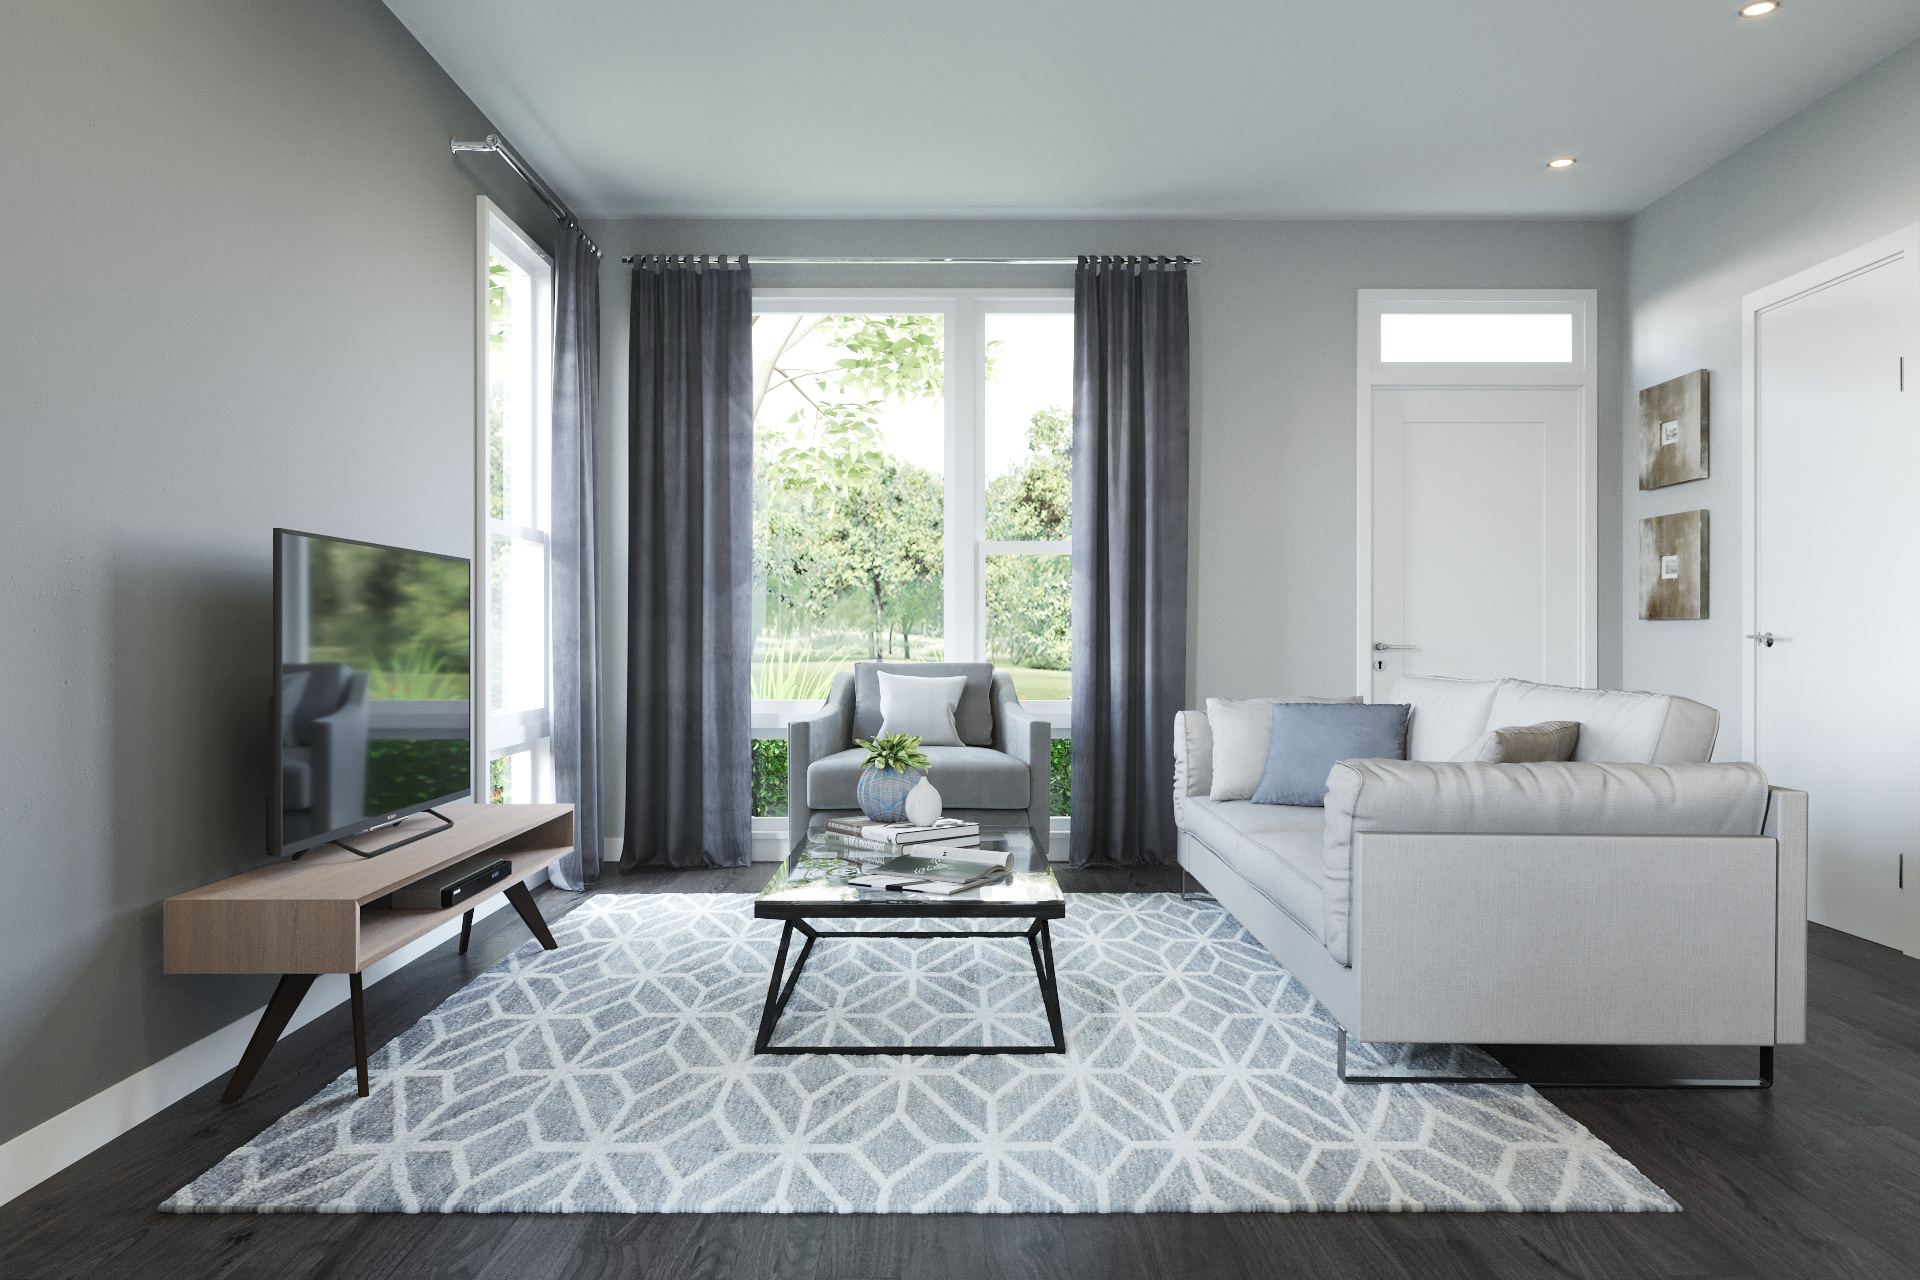 spacious plans - Parkside Old Town's 2 and 3-bedroom townhomes boast spacious floor plans with bright interiors, stainless steel appliances, hardwood floors and attached 2-car garages per plan.